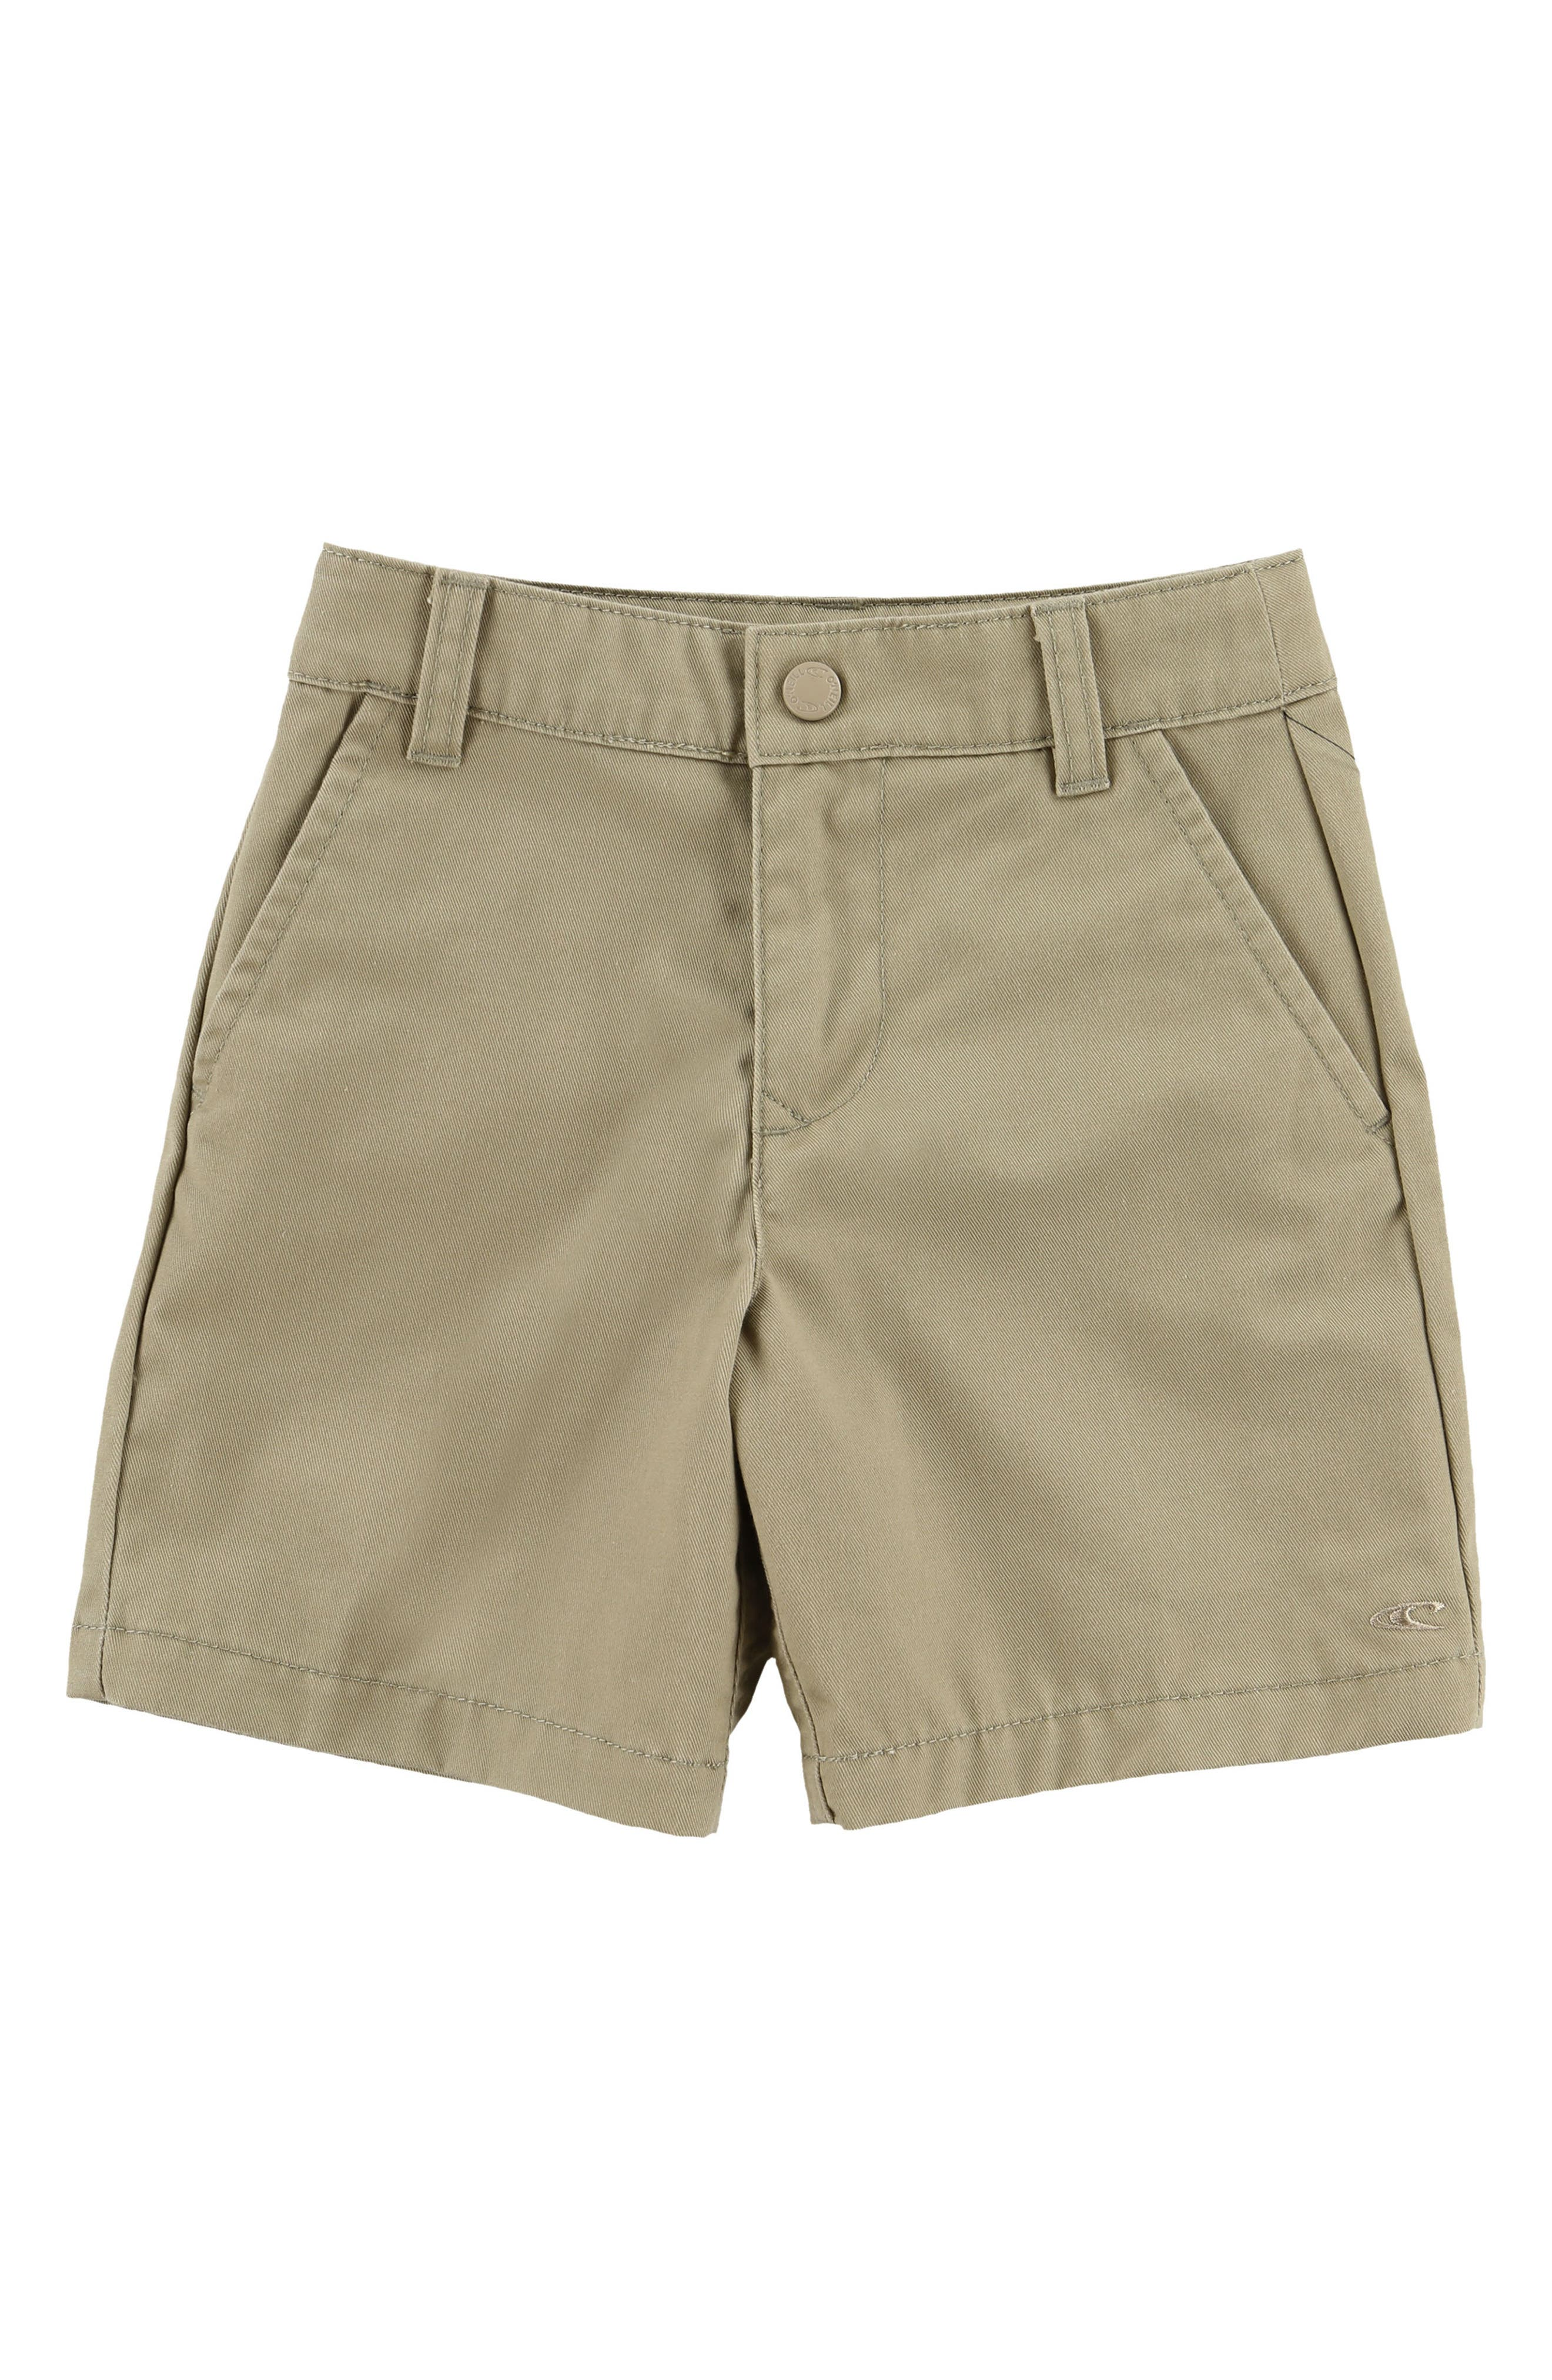 Alternate Image 1 Selected - O'Neill Contact Twill Walking Shorts (Toddler Boys)